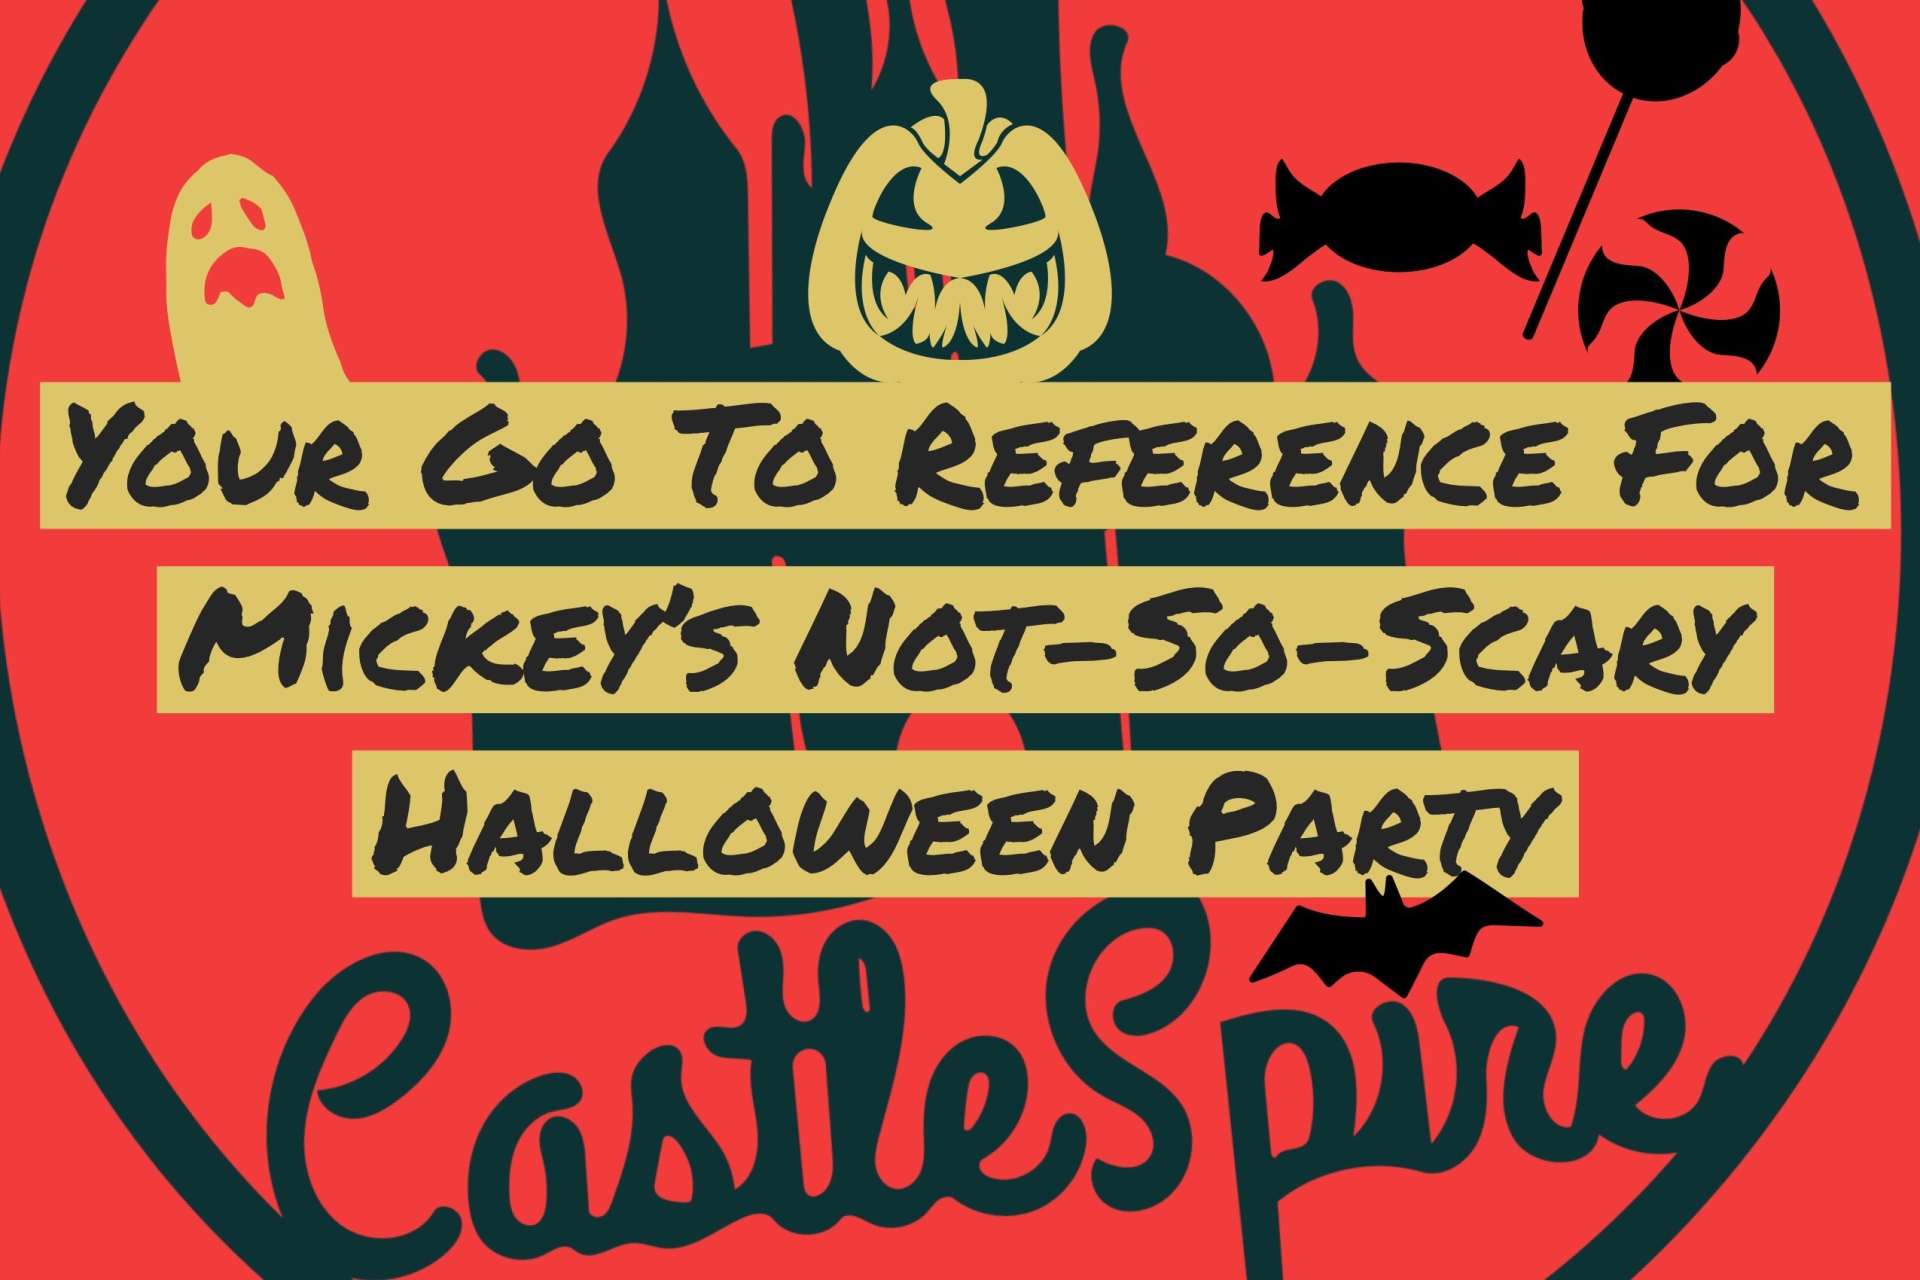 your go to reference for mickey's not-so-scary halloween party